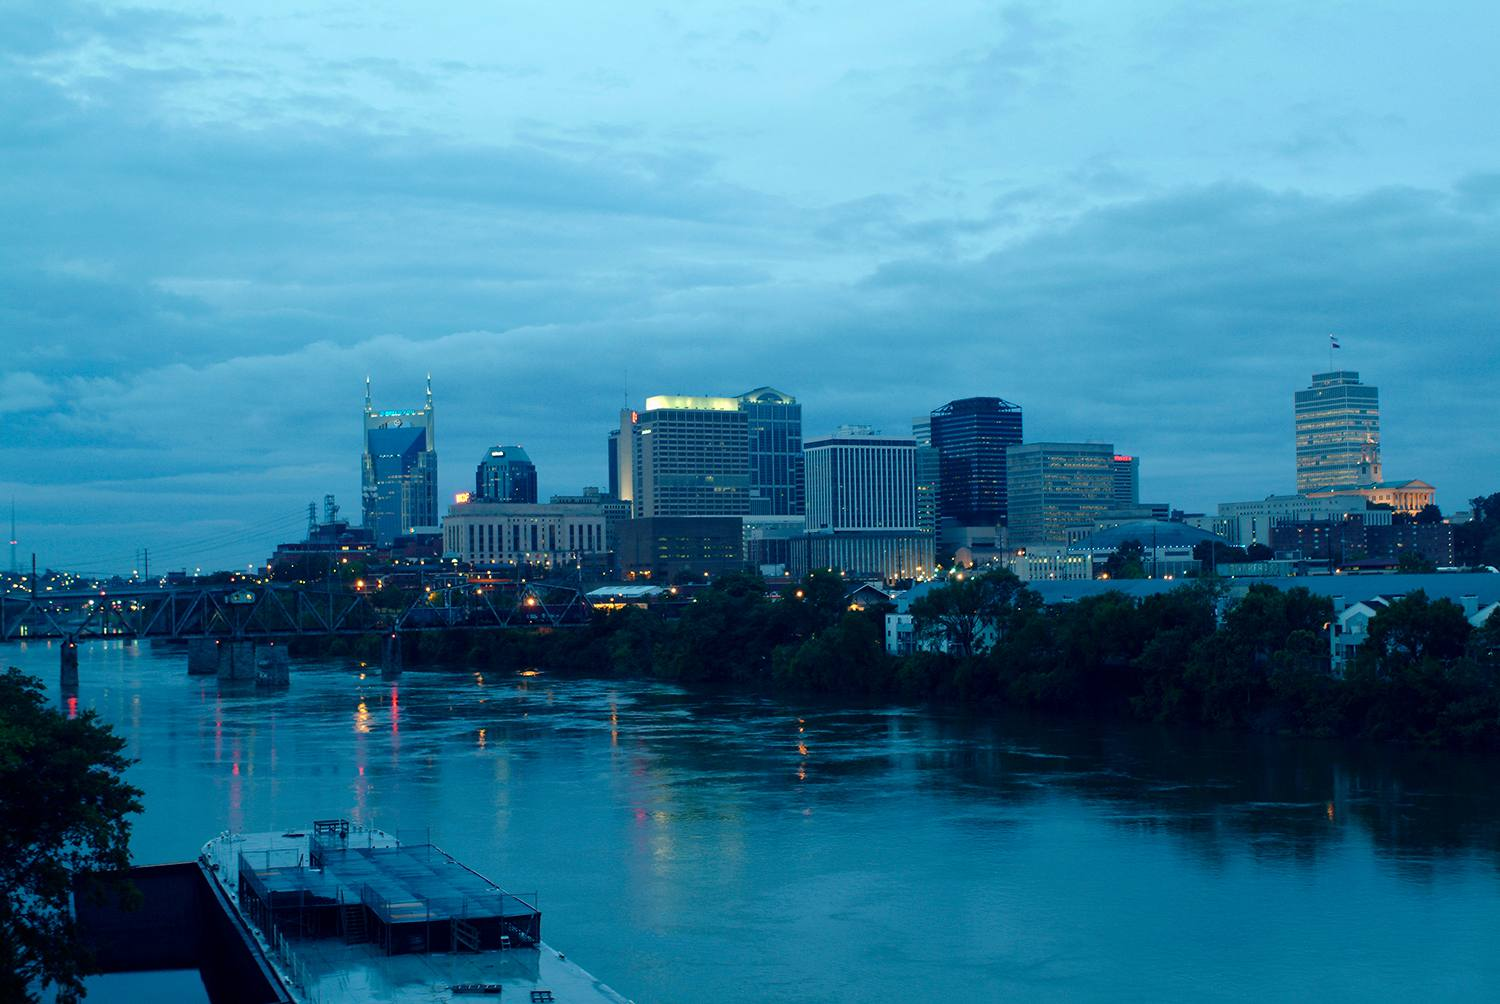 Tennessee, Nashville, Maybe Bob Dylan was on to something: The Mississippi River flows by the Nashville Skyline at dawn.